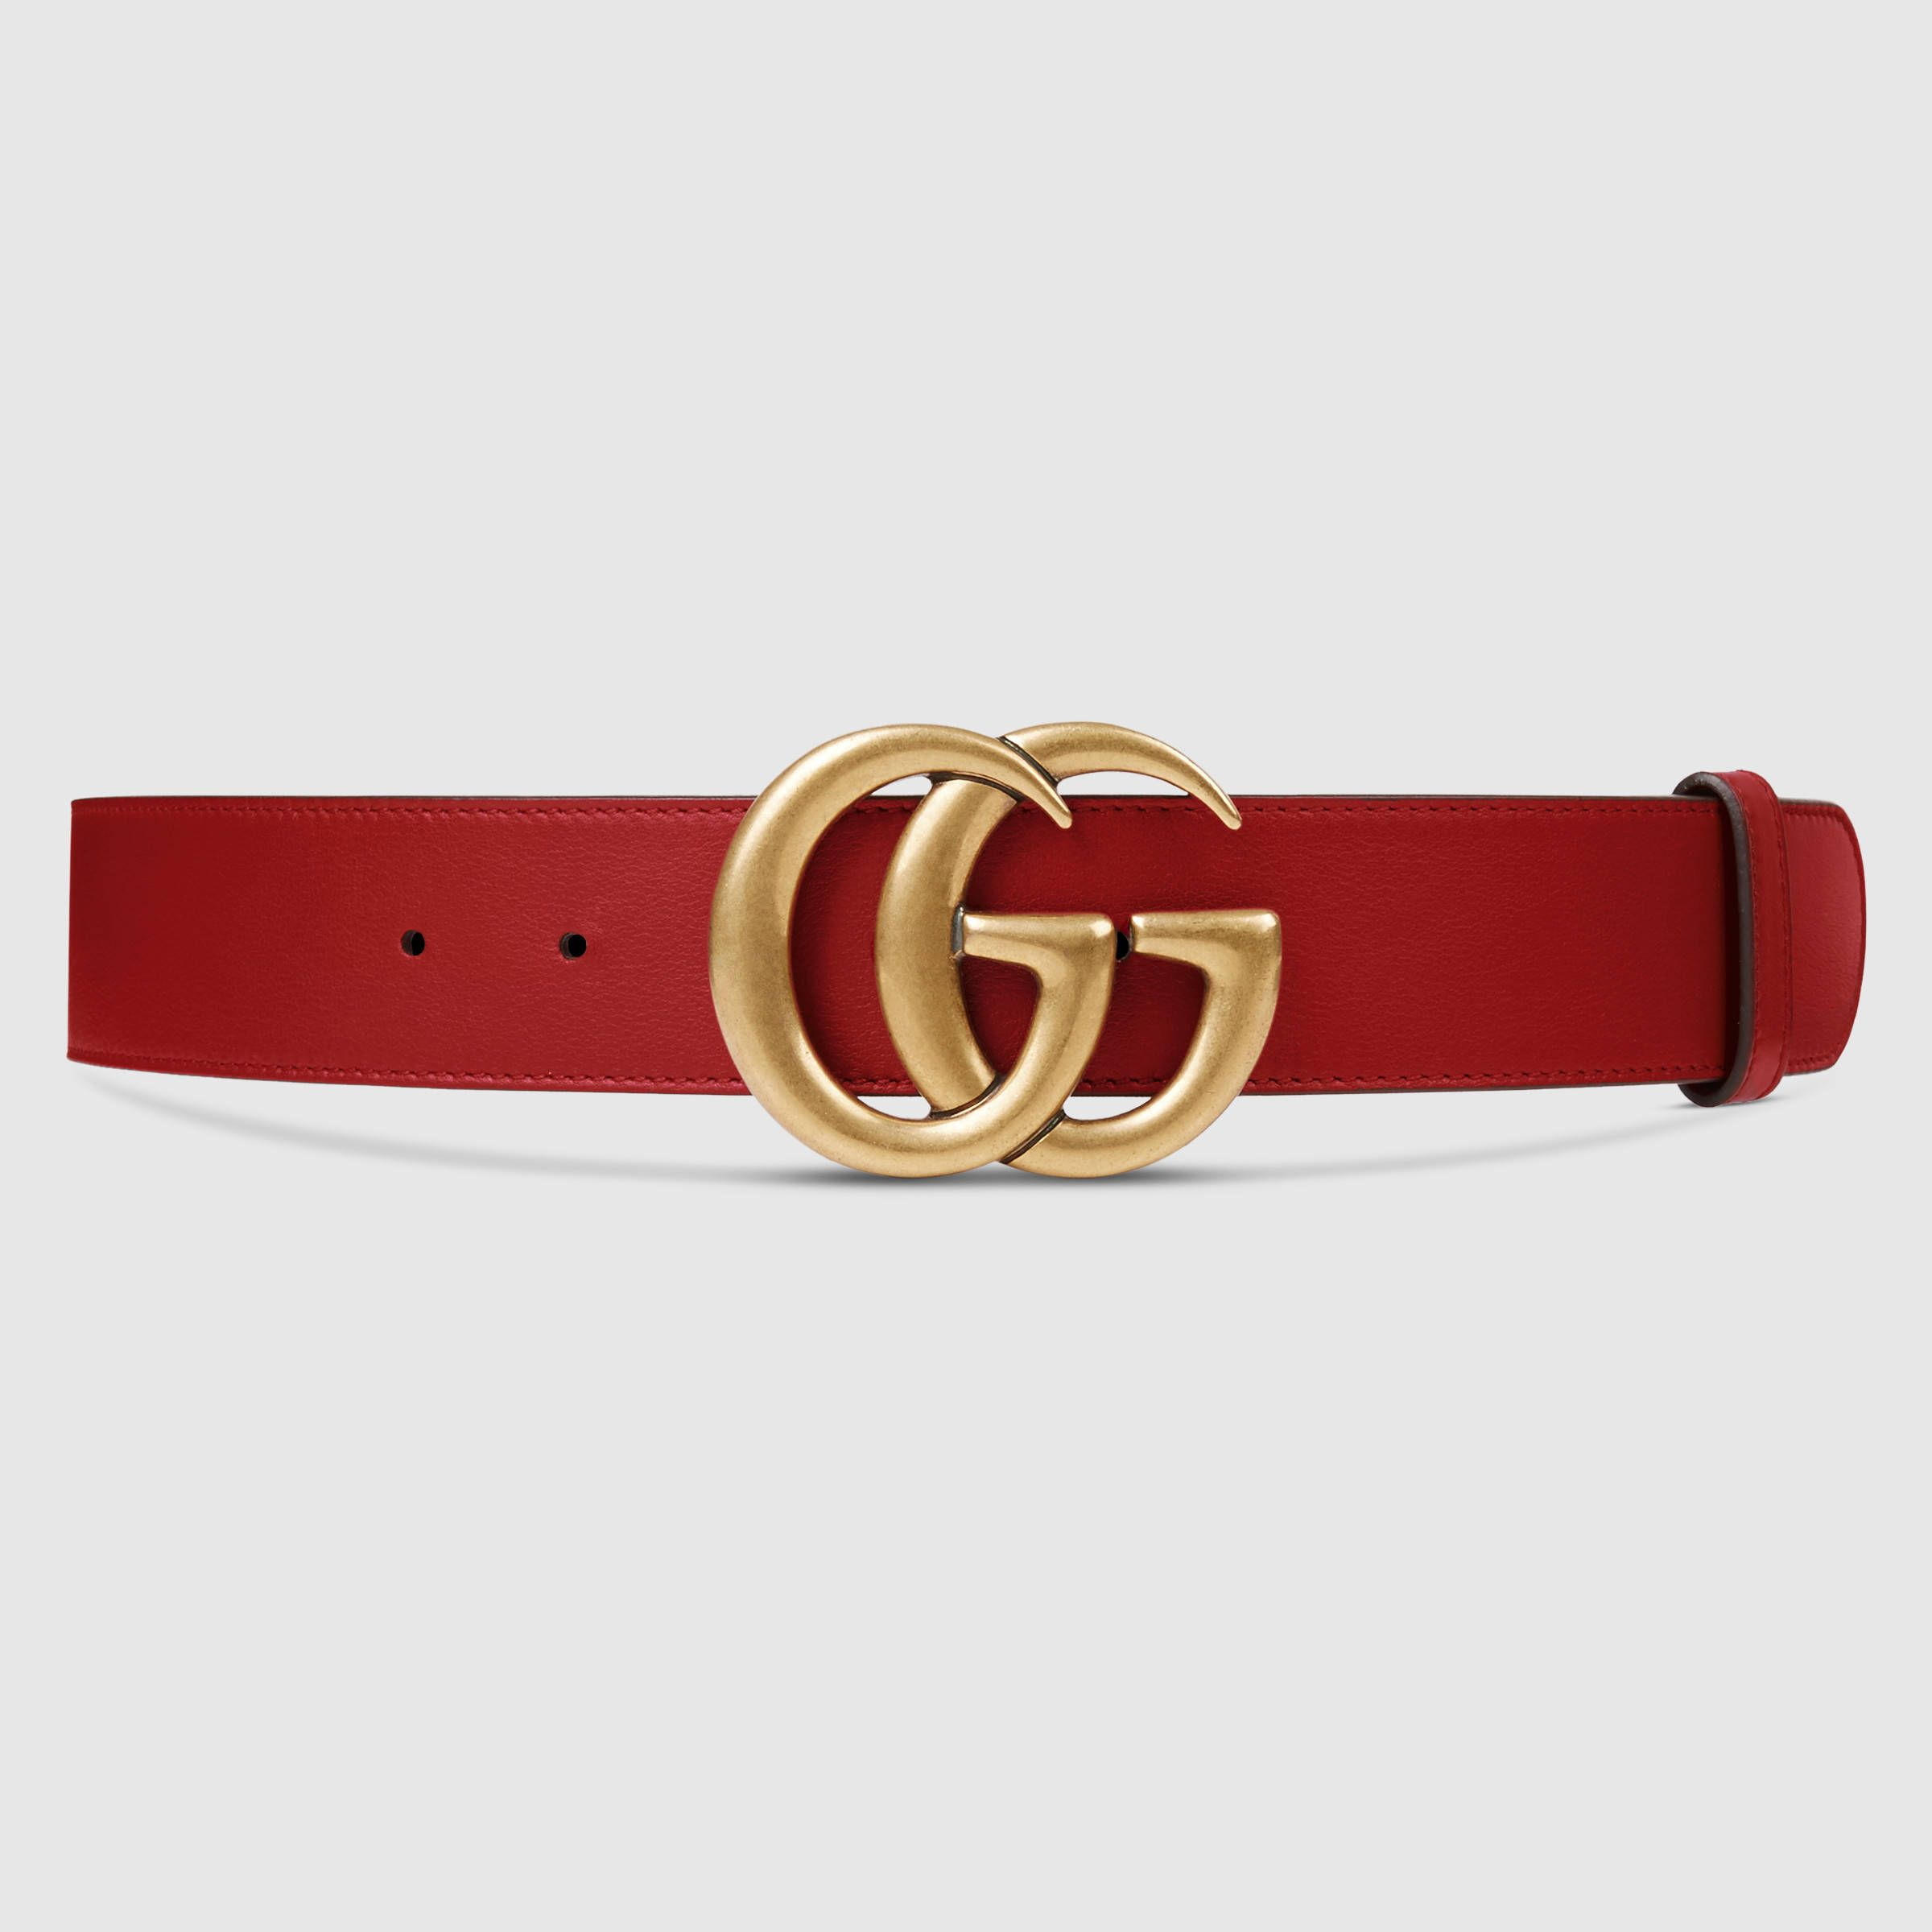 a06285dce31ba Leather belt with Double G buckle | ***GUCCI FASHION*** | Red gucci ...